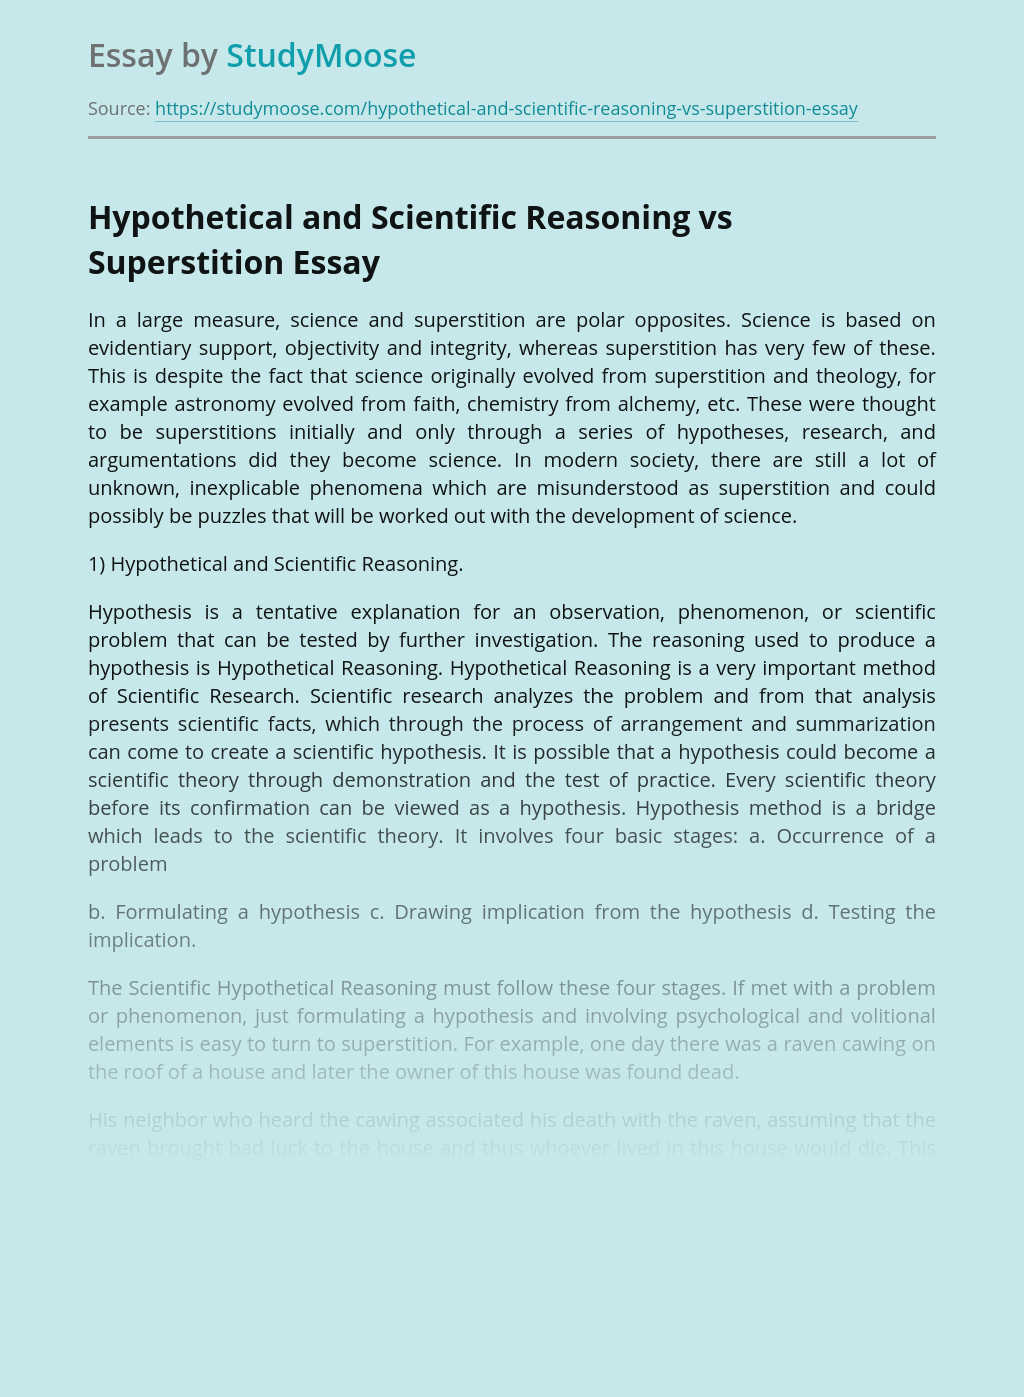 Hypothetical and Scientific Reasoning vs Superstition